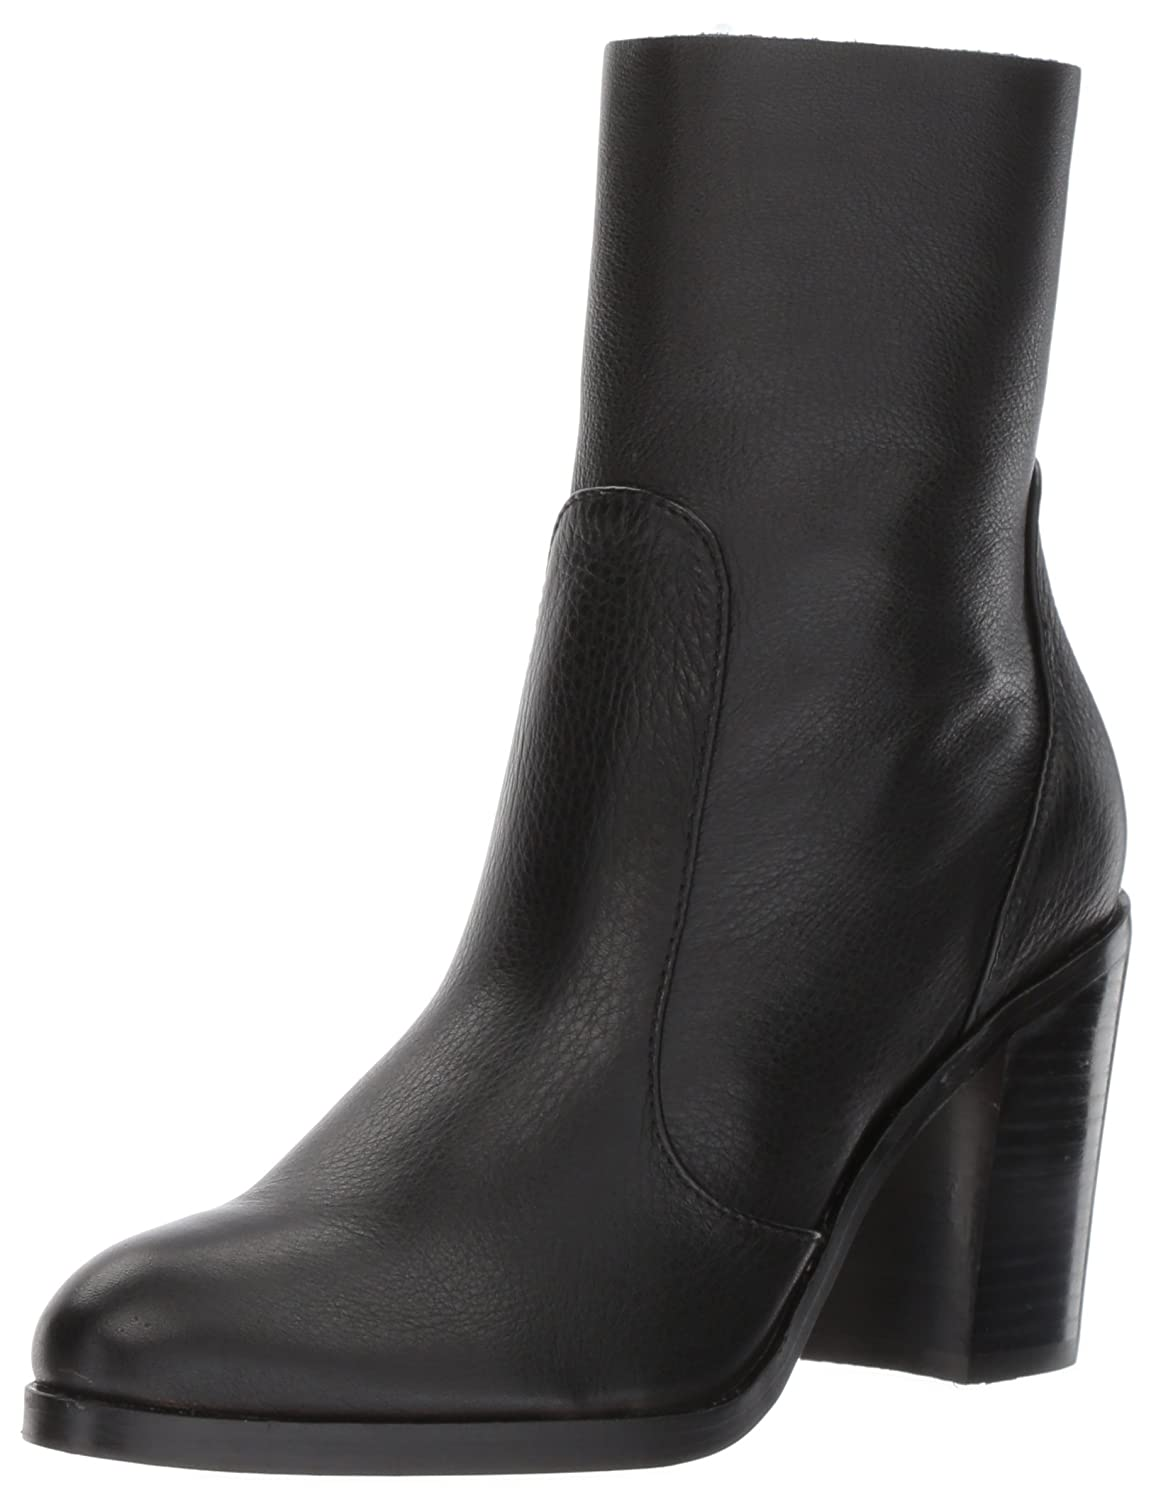 Splendid Women's Roselyn Mid Calf Boot B072298M91 5.5 B(M) US|Black 2